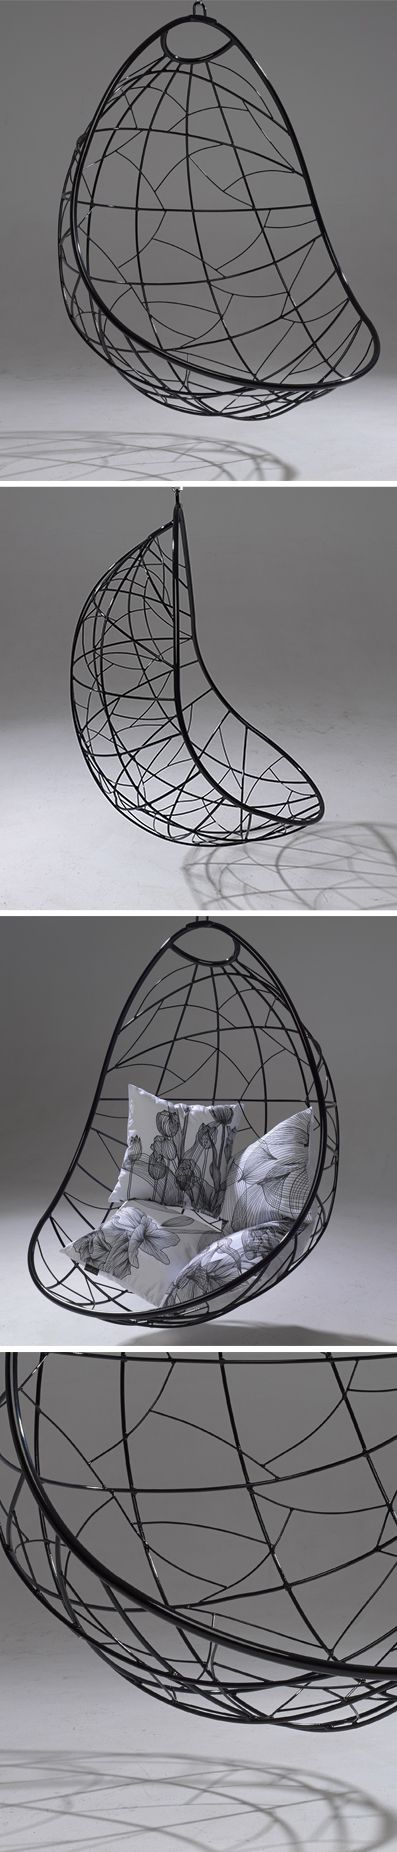 Hanging Chair Nest Egg Black. Www.studiostirling.co.za